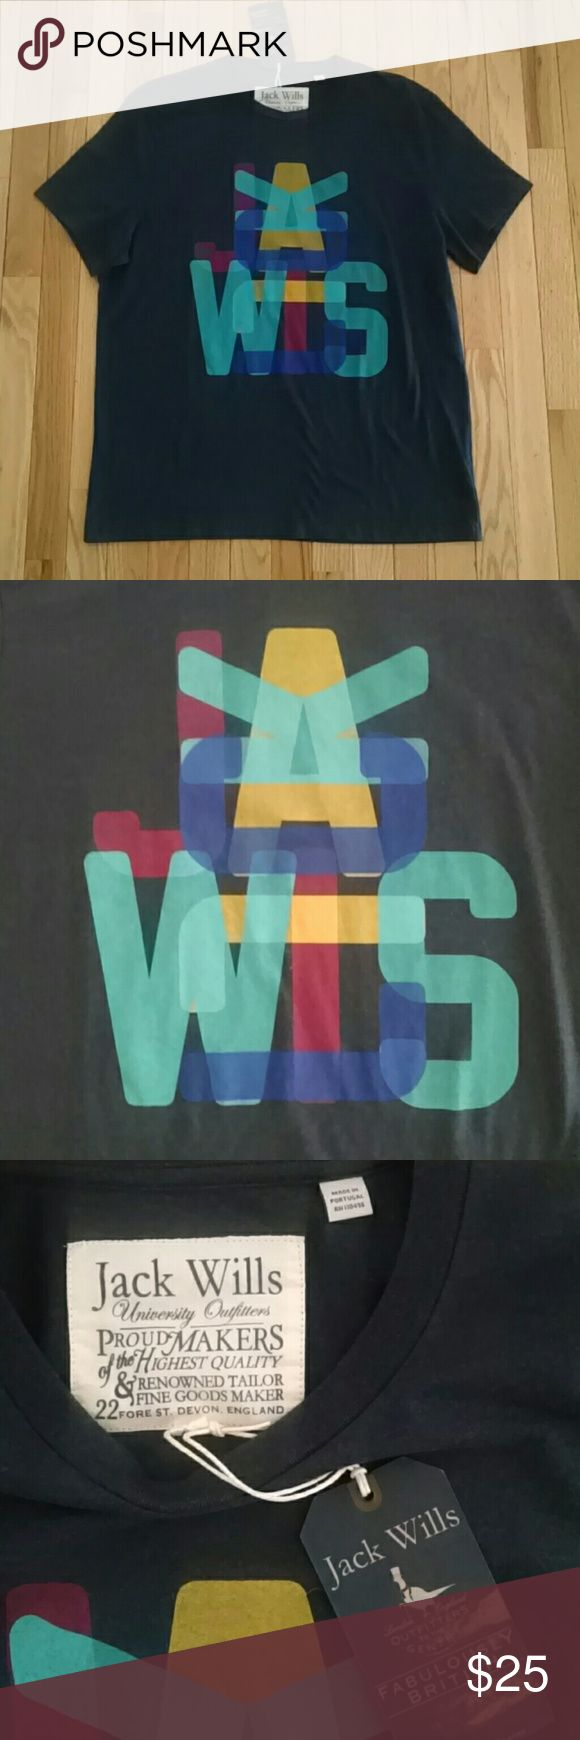 NWT Jack Wills Graphic T Shirt XL Navy blue short sleeve tee with multicolored Jack Wills graphic. In excellent condition. Comes from a smoke free, pet free home. Jack Wills Shirts Tees - Short Sleeve